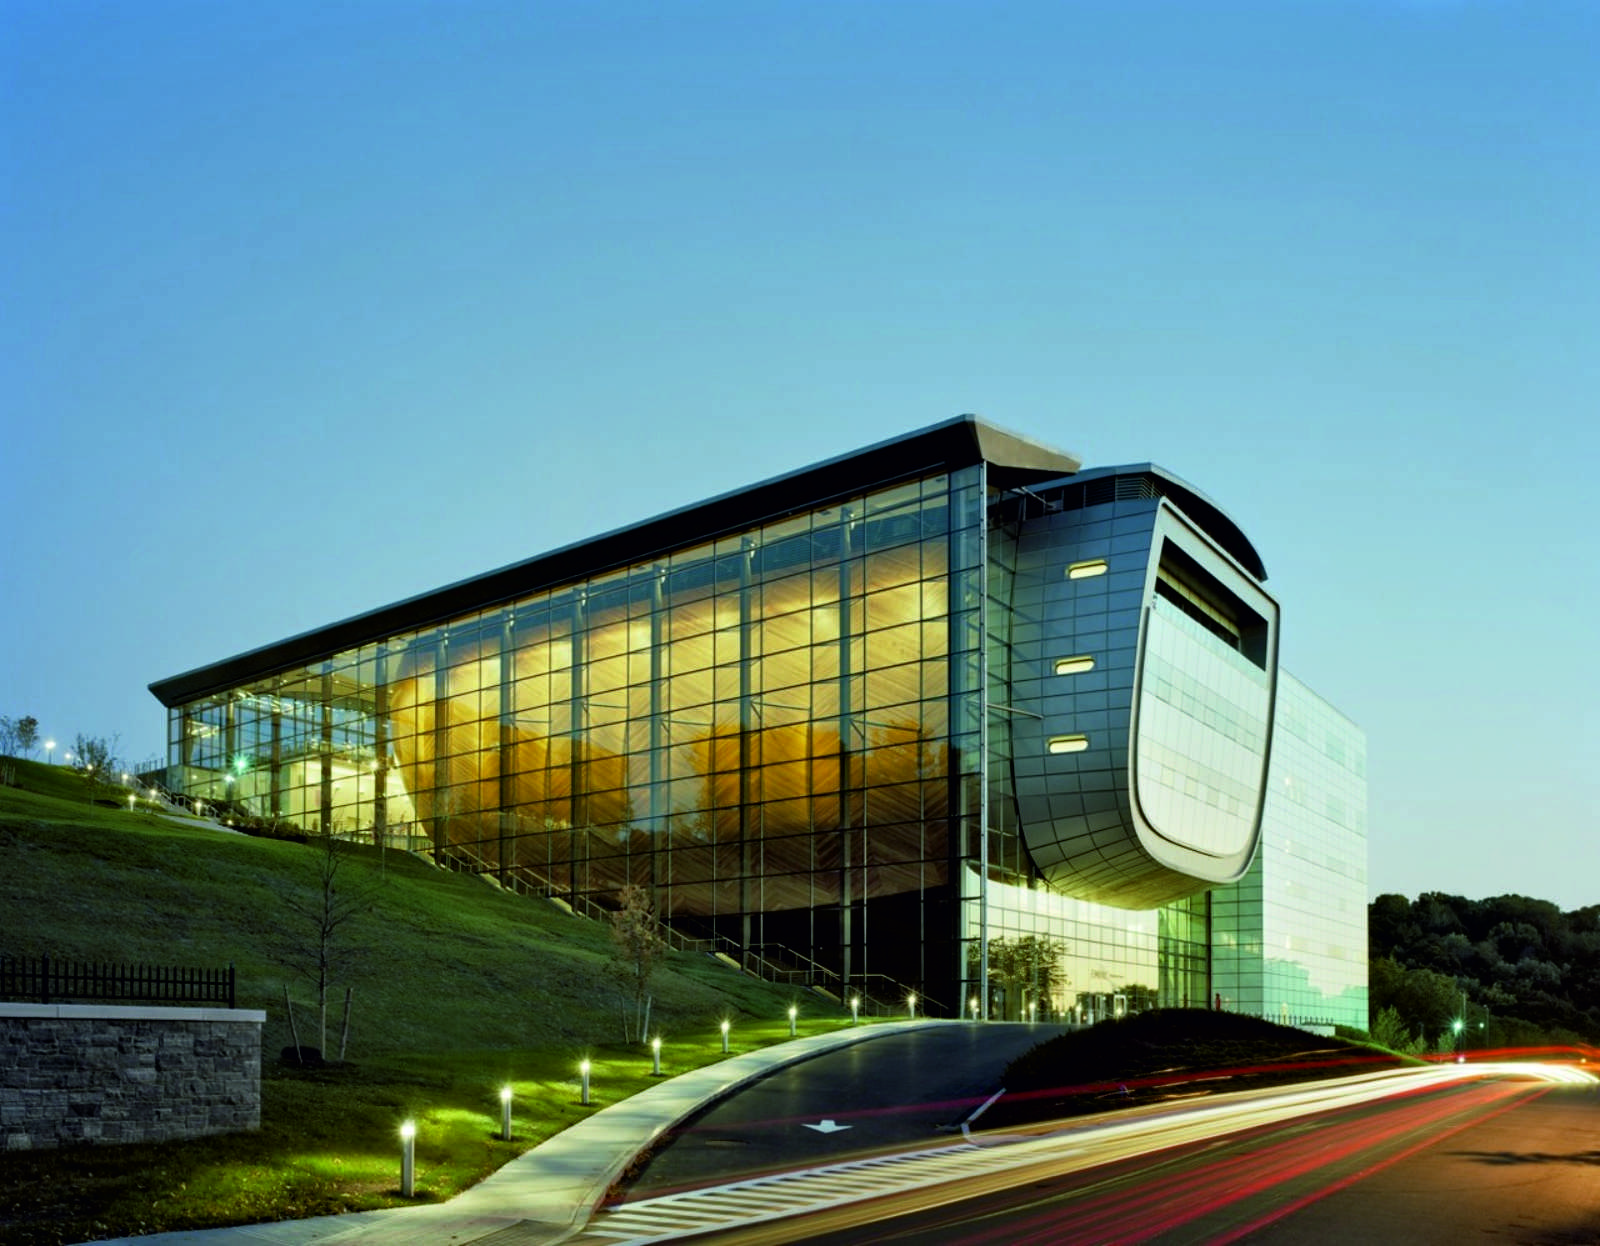 EMPAC BY GRIMSHAW ARCHITECTS – aasarchitecture